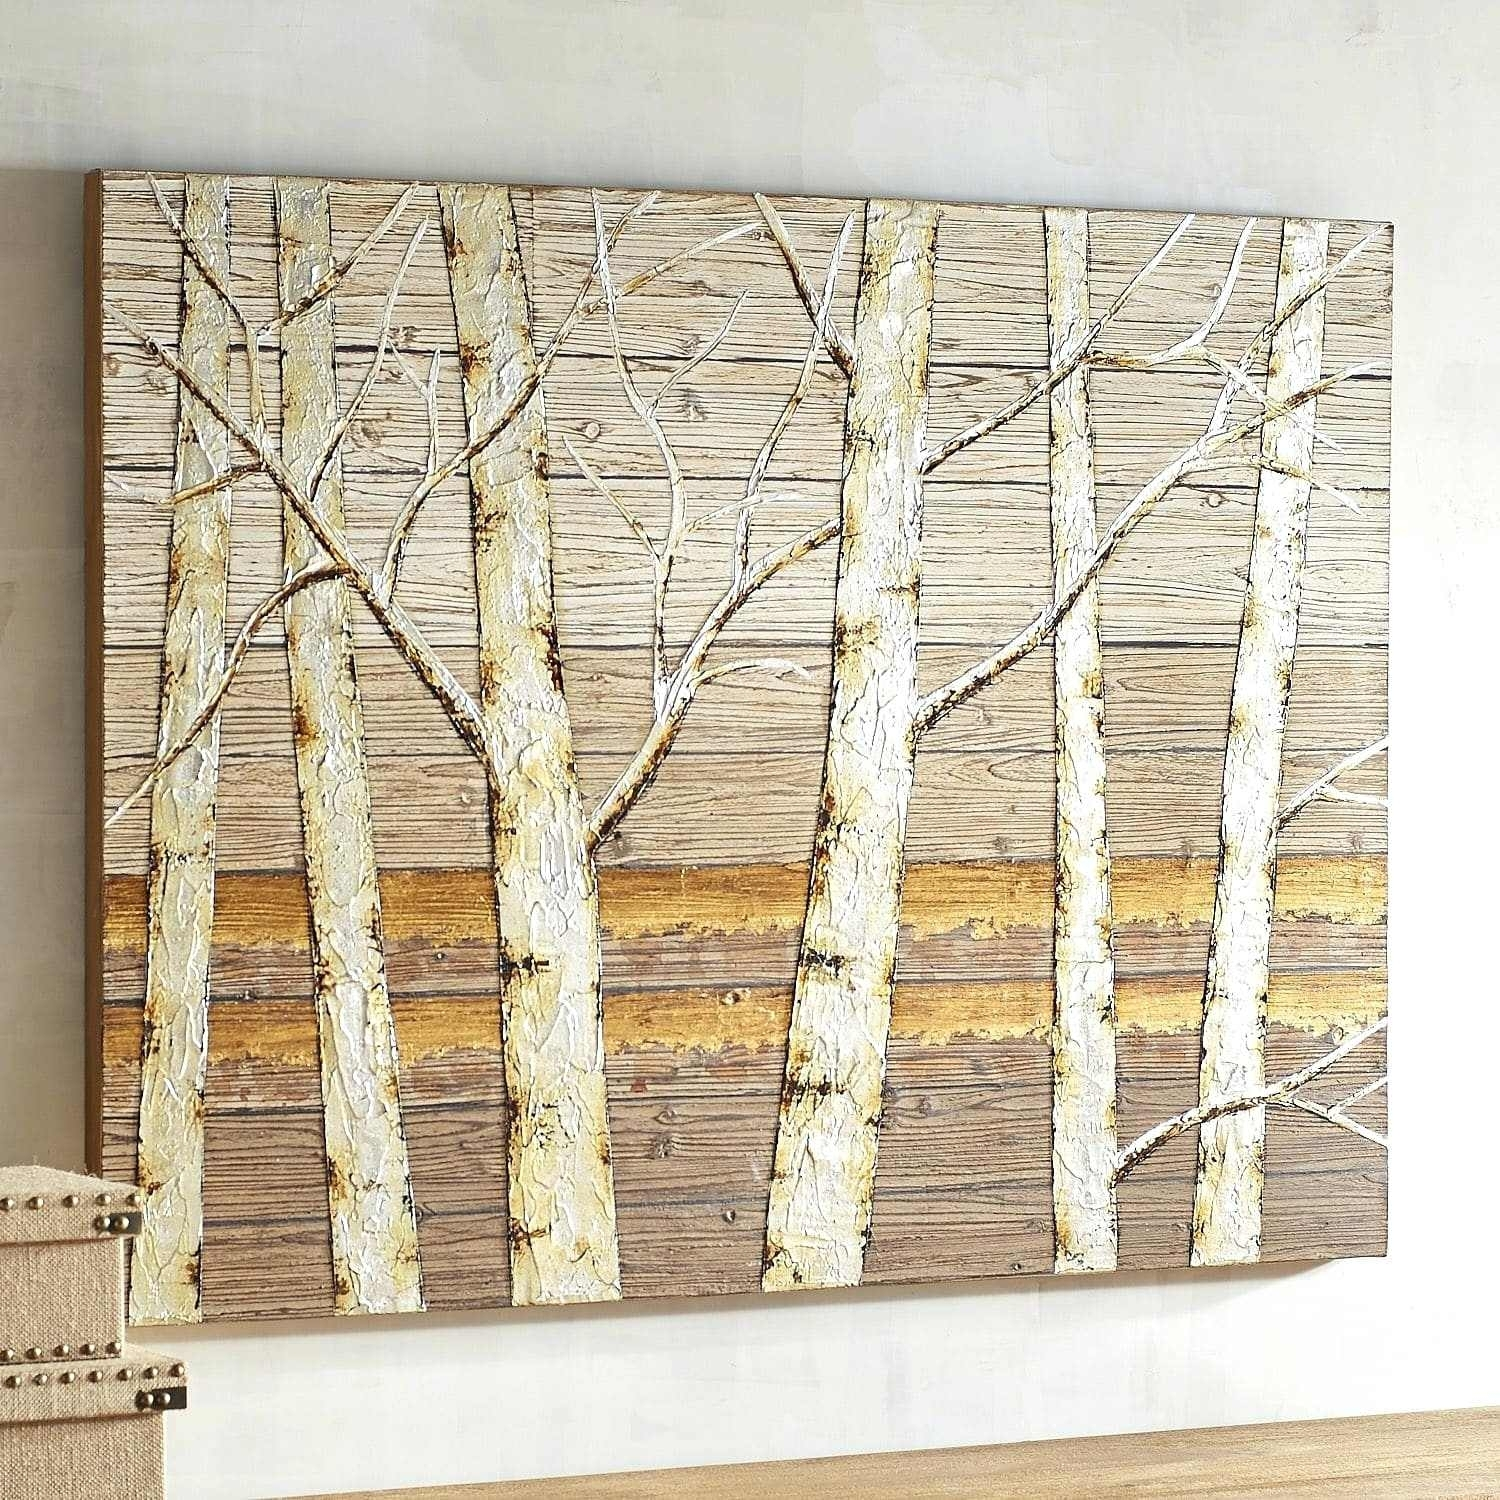 Birch Wall Art Metallic Birch Trees Wall Art Birch Tree Wall Art For 2017 Birch Tree Wall Art (View 5 of 20)